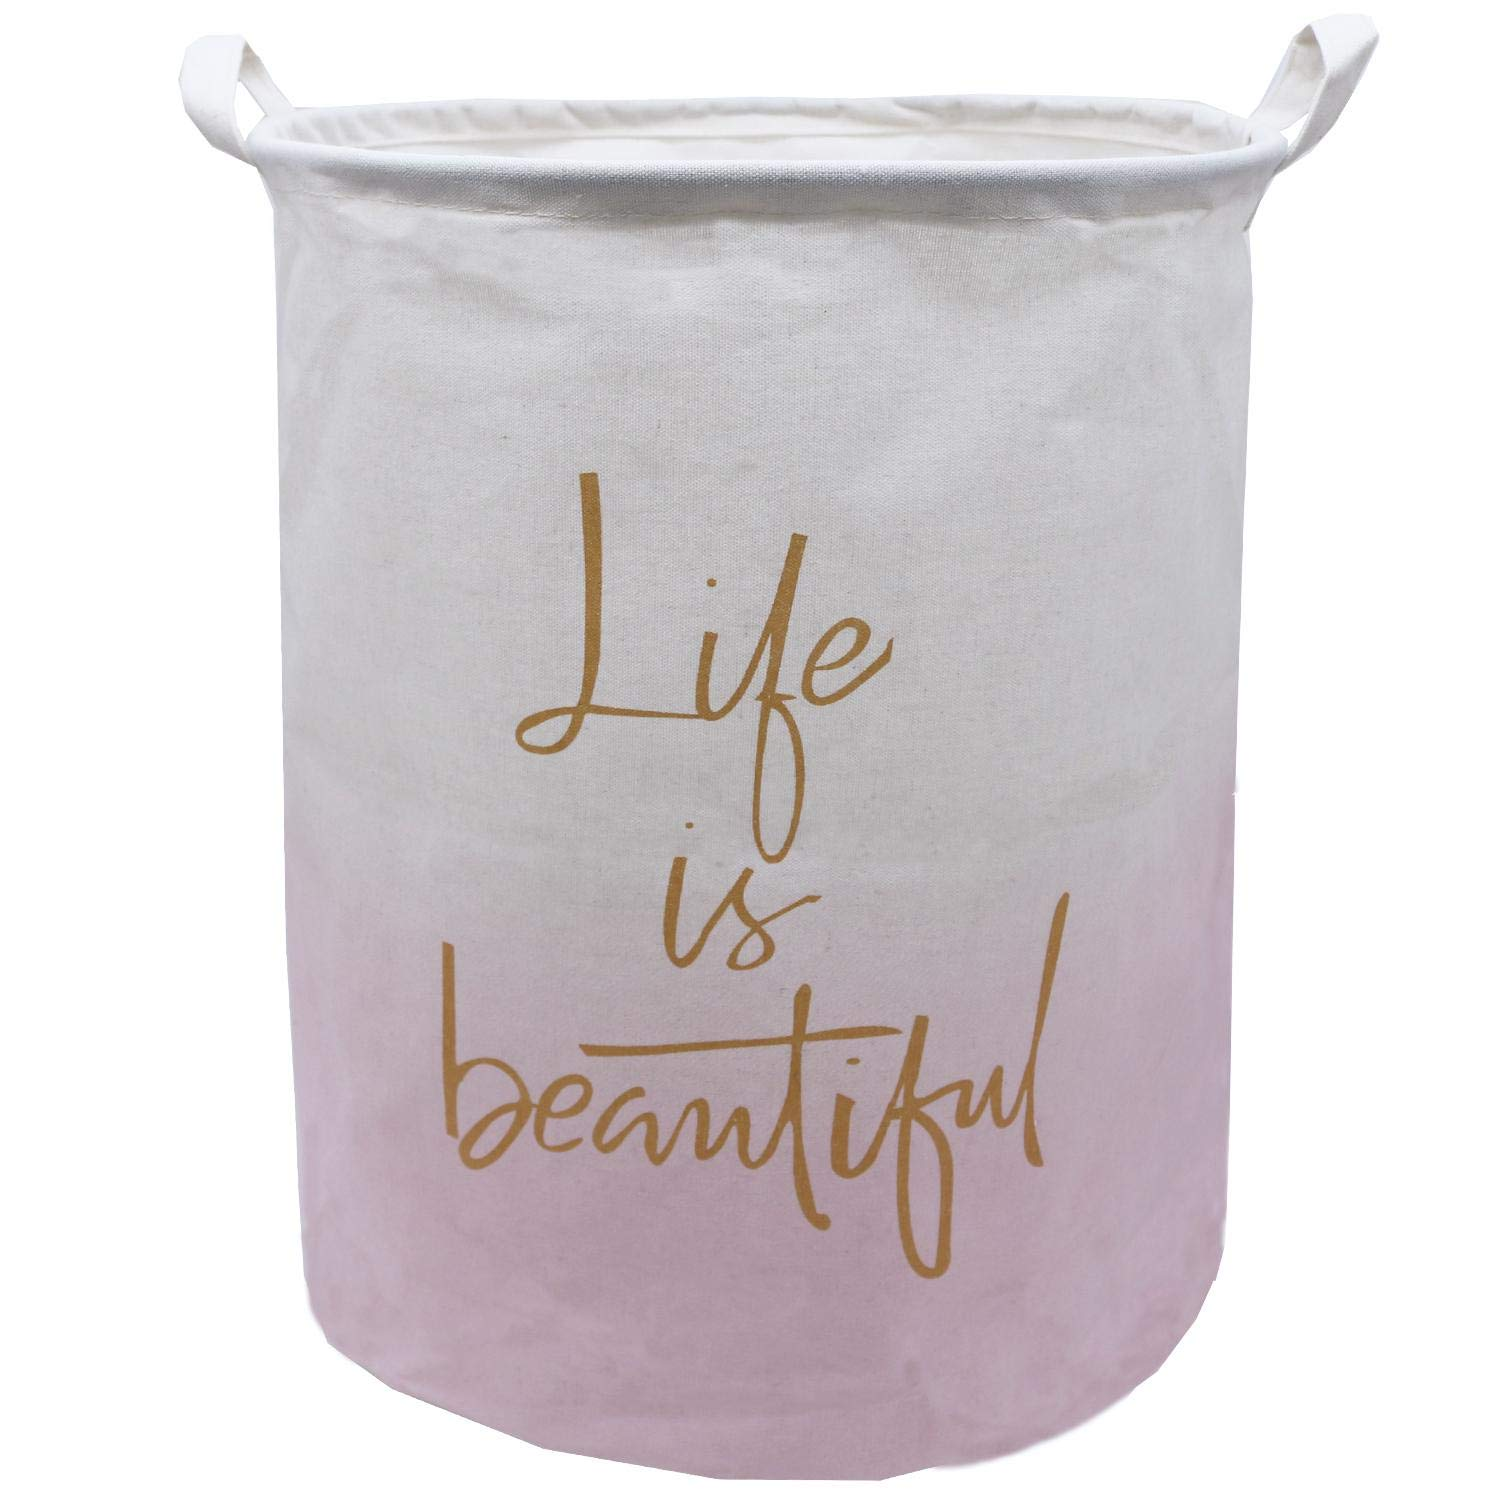 Large Canvas Laundry Hamper 19.7x15.7 Inch, Collapsible Storage Bin,ZUEXT Waterproof Linen Fabric Foldable Dirty Clothes Laundry Basket for Girls Nursery Bedroom Decor, Baby Shower Gift(Pink Life)